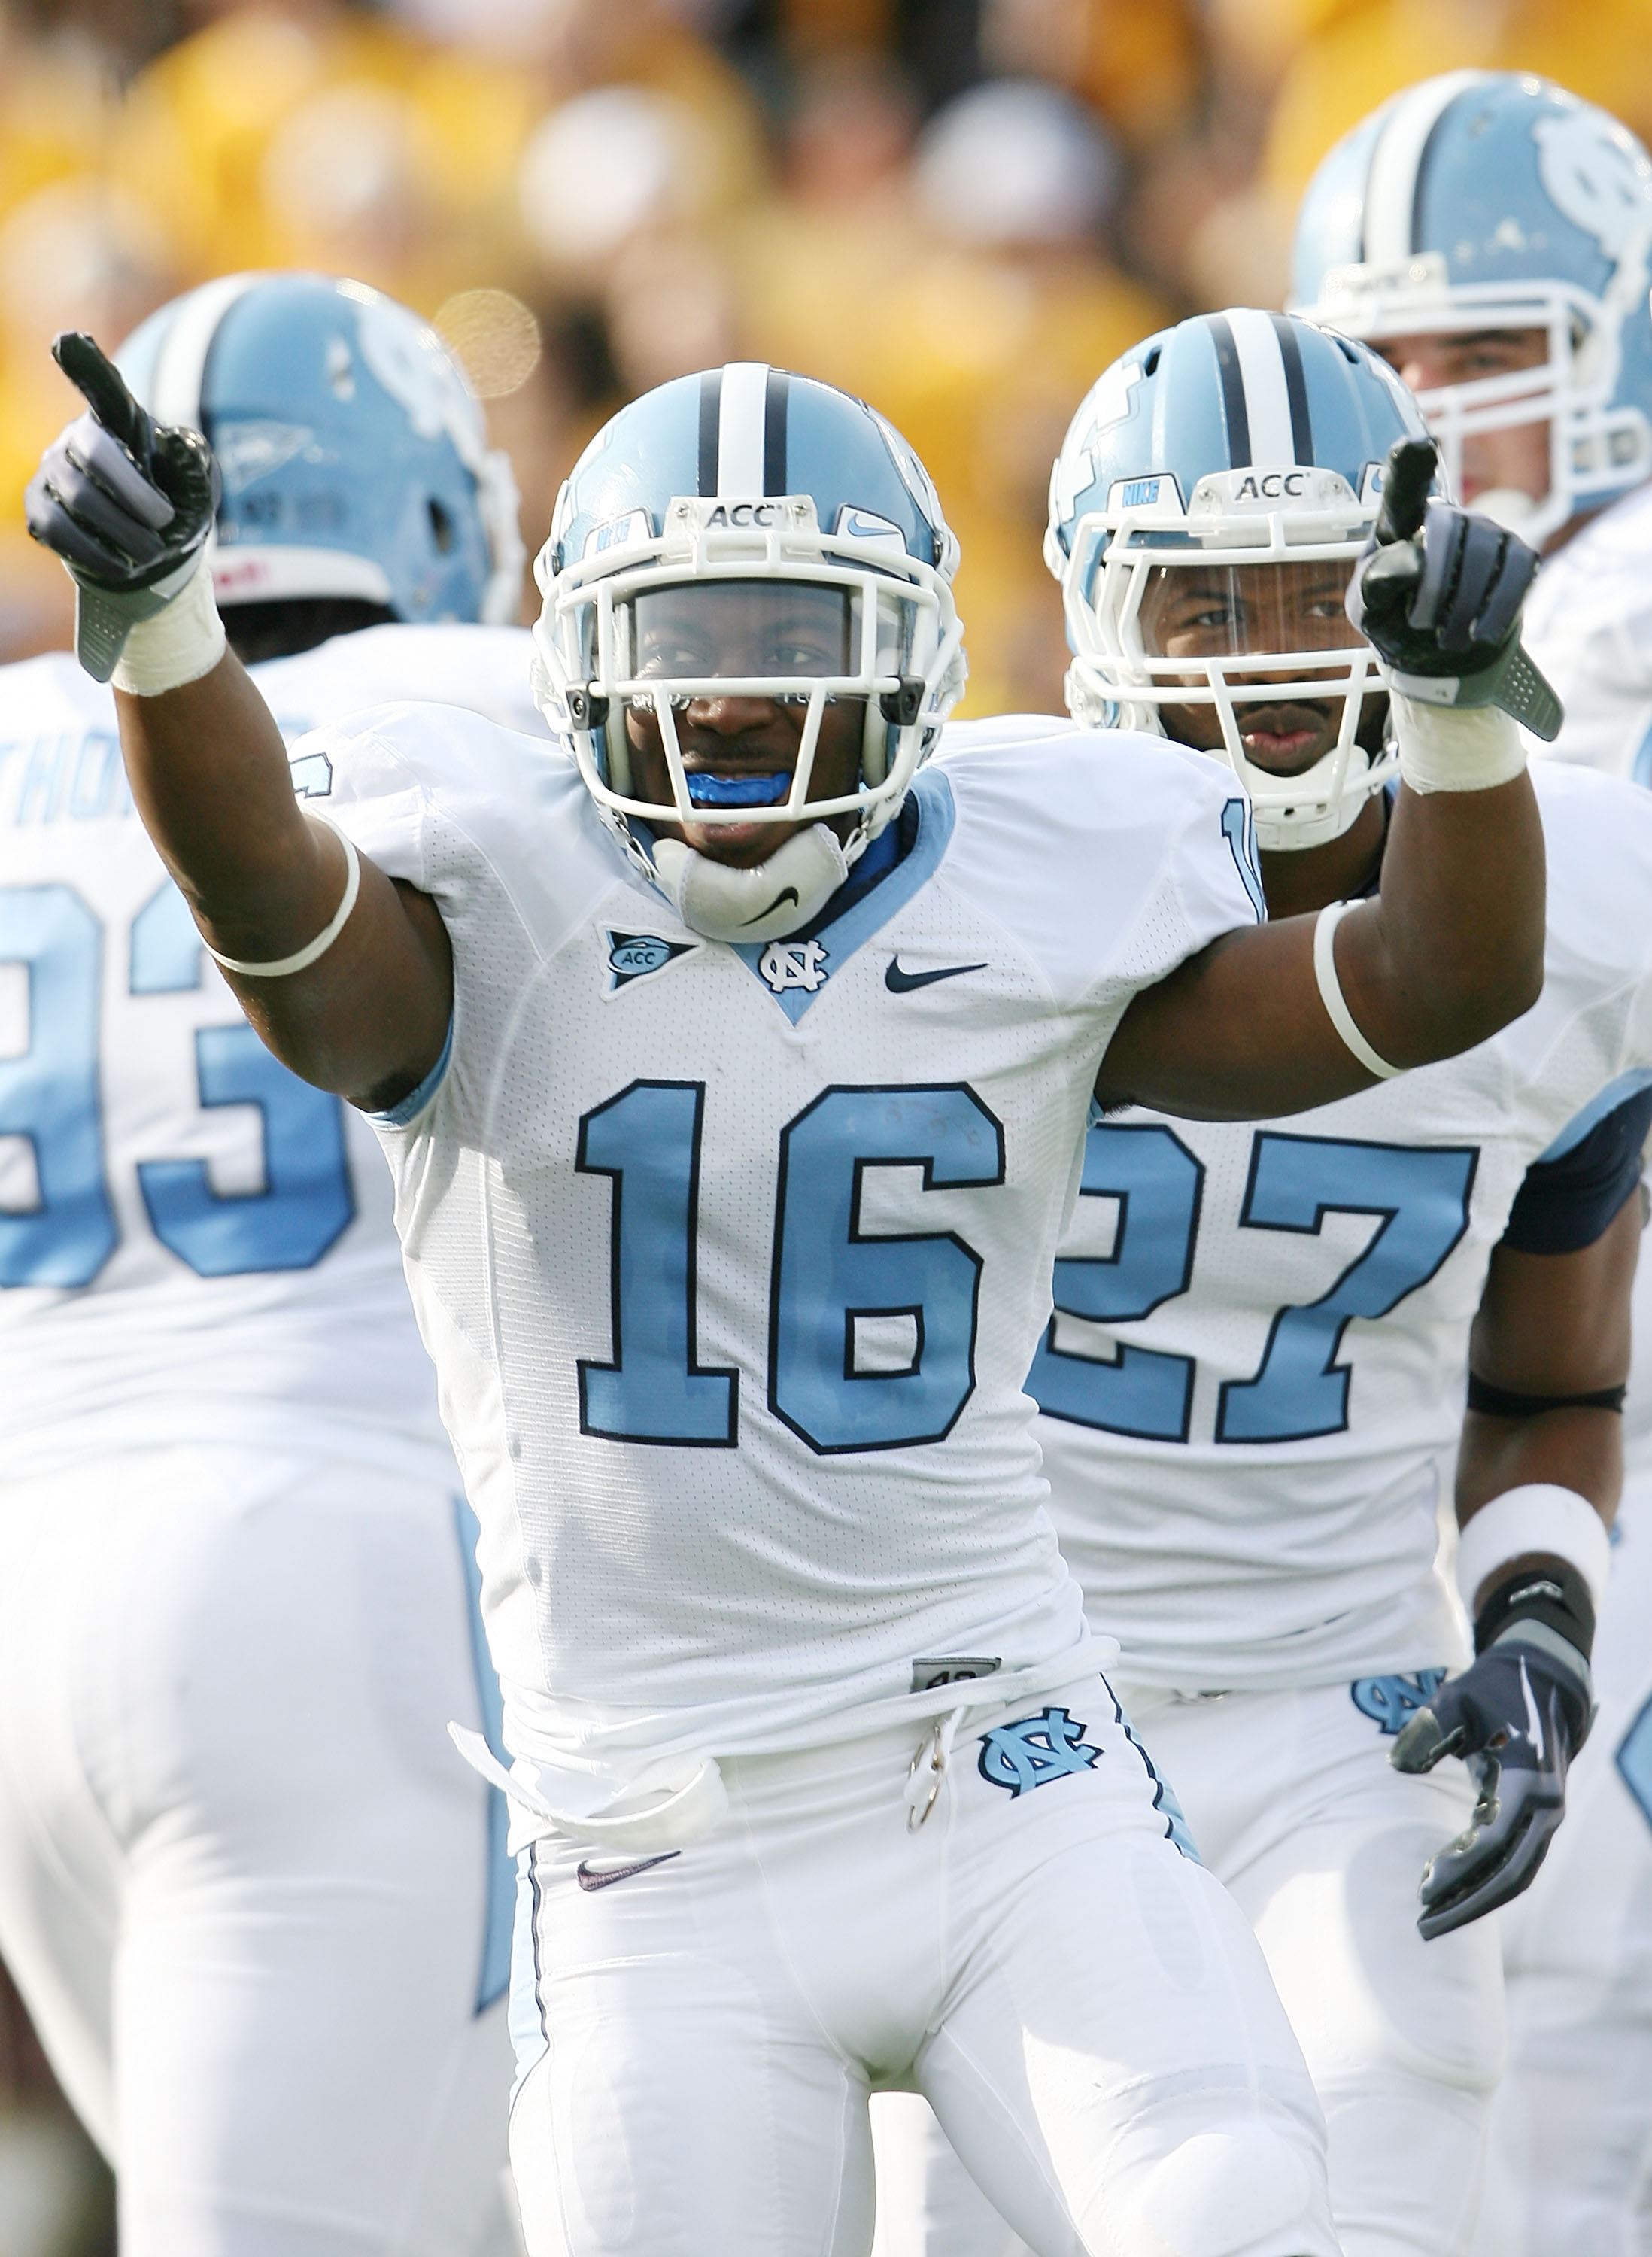 CHESTNUT HILL, MA - NOVEMBER 21:  Kendric Burney #16 of the North Carolina Tar Heels celebrates his touchdown in the first quarter against the Boston College Eagles on November 21, 2009 at Alumni Stadium in Chestnut Hill, Massachusetts.  (Photo by Elsa/Ge